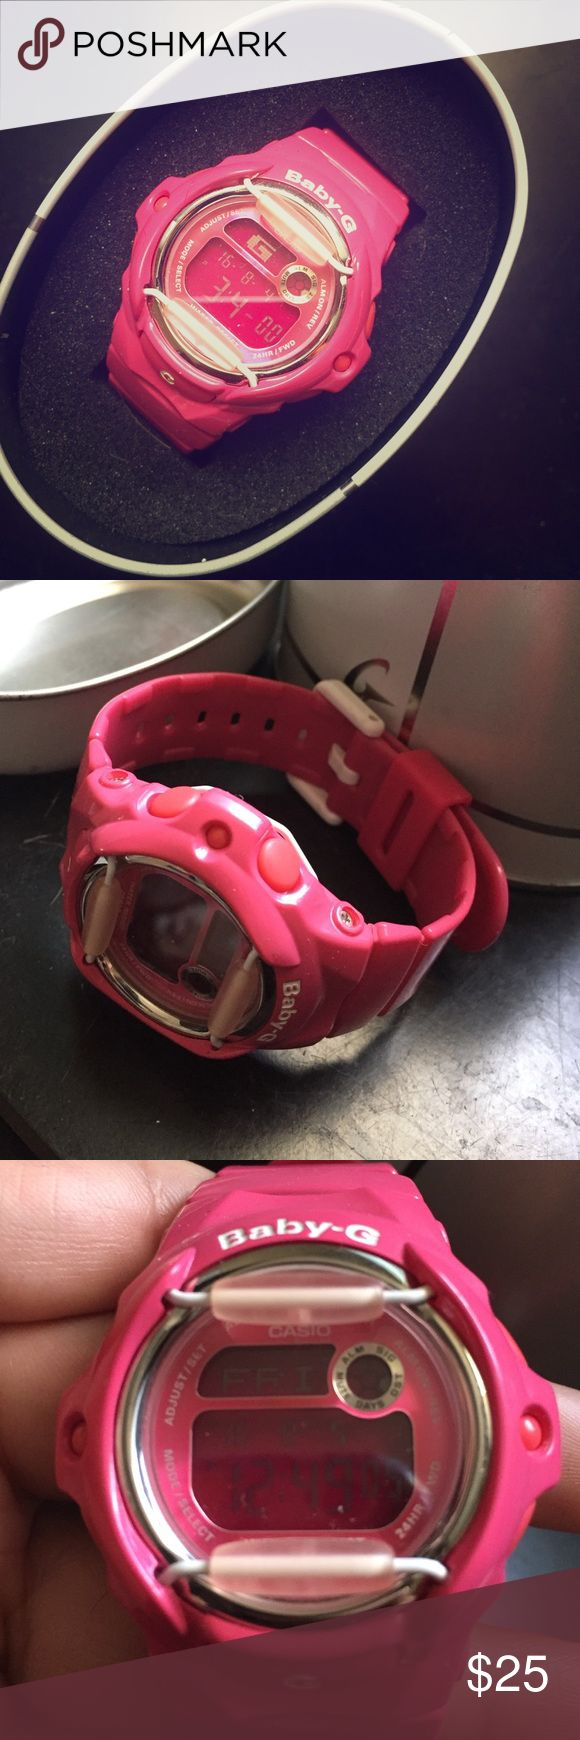 Bright Pink Athletic Watch Pink watch great for working out/outdoor activities. Never worn, still in box. Casio Accessories Watches